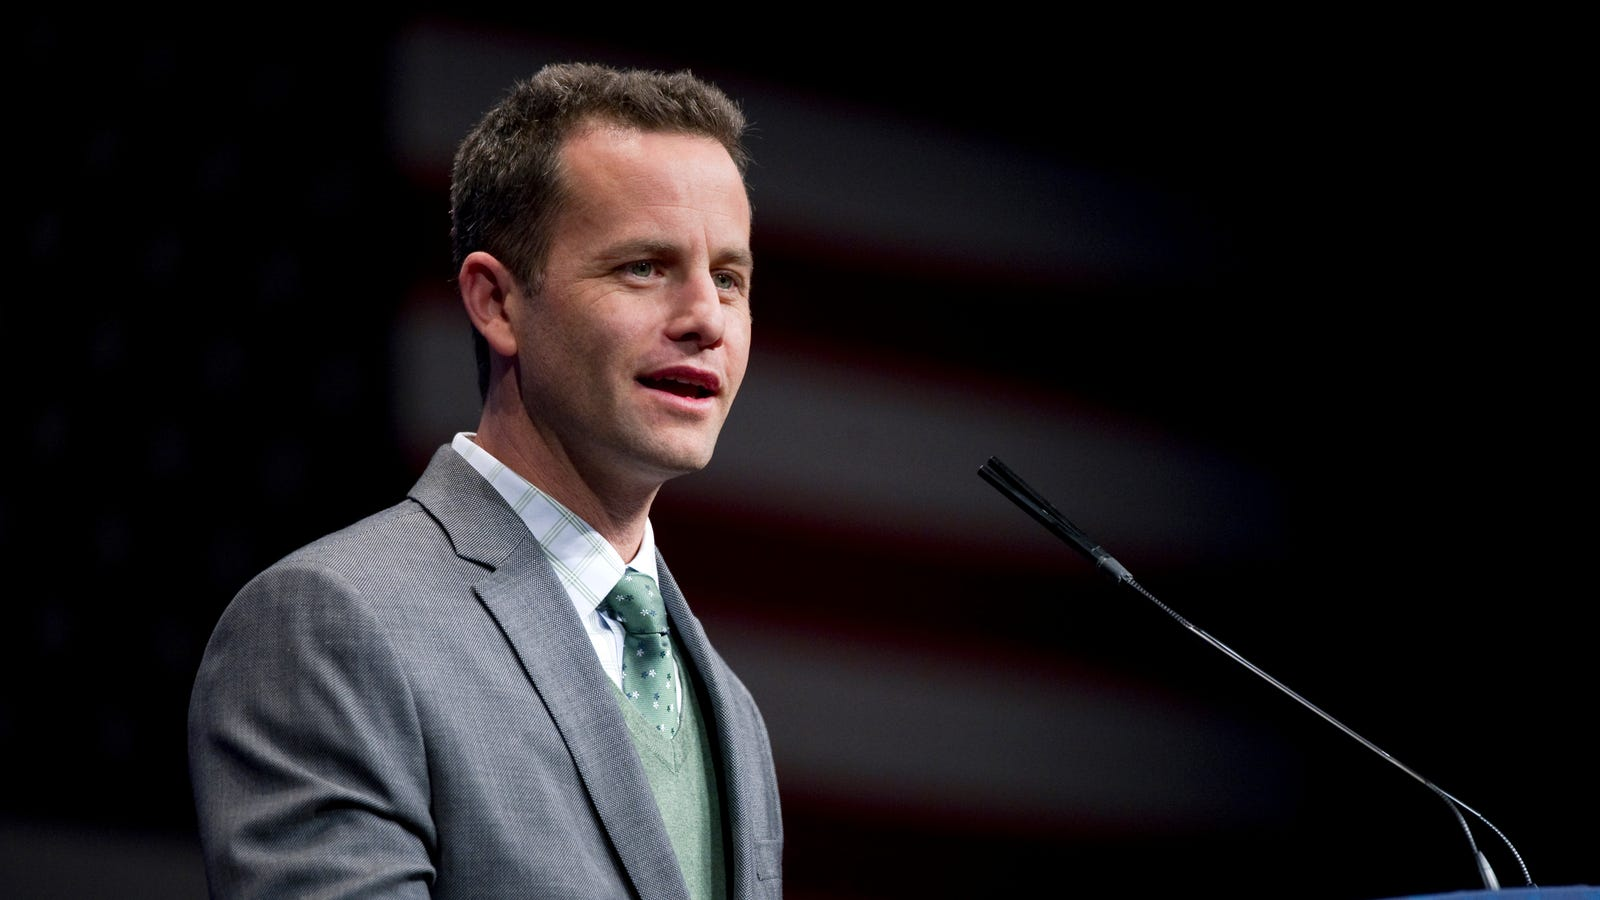 Kirk Cameron says God sent the hurricanes to teach us a lesson about ...